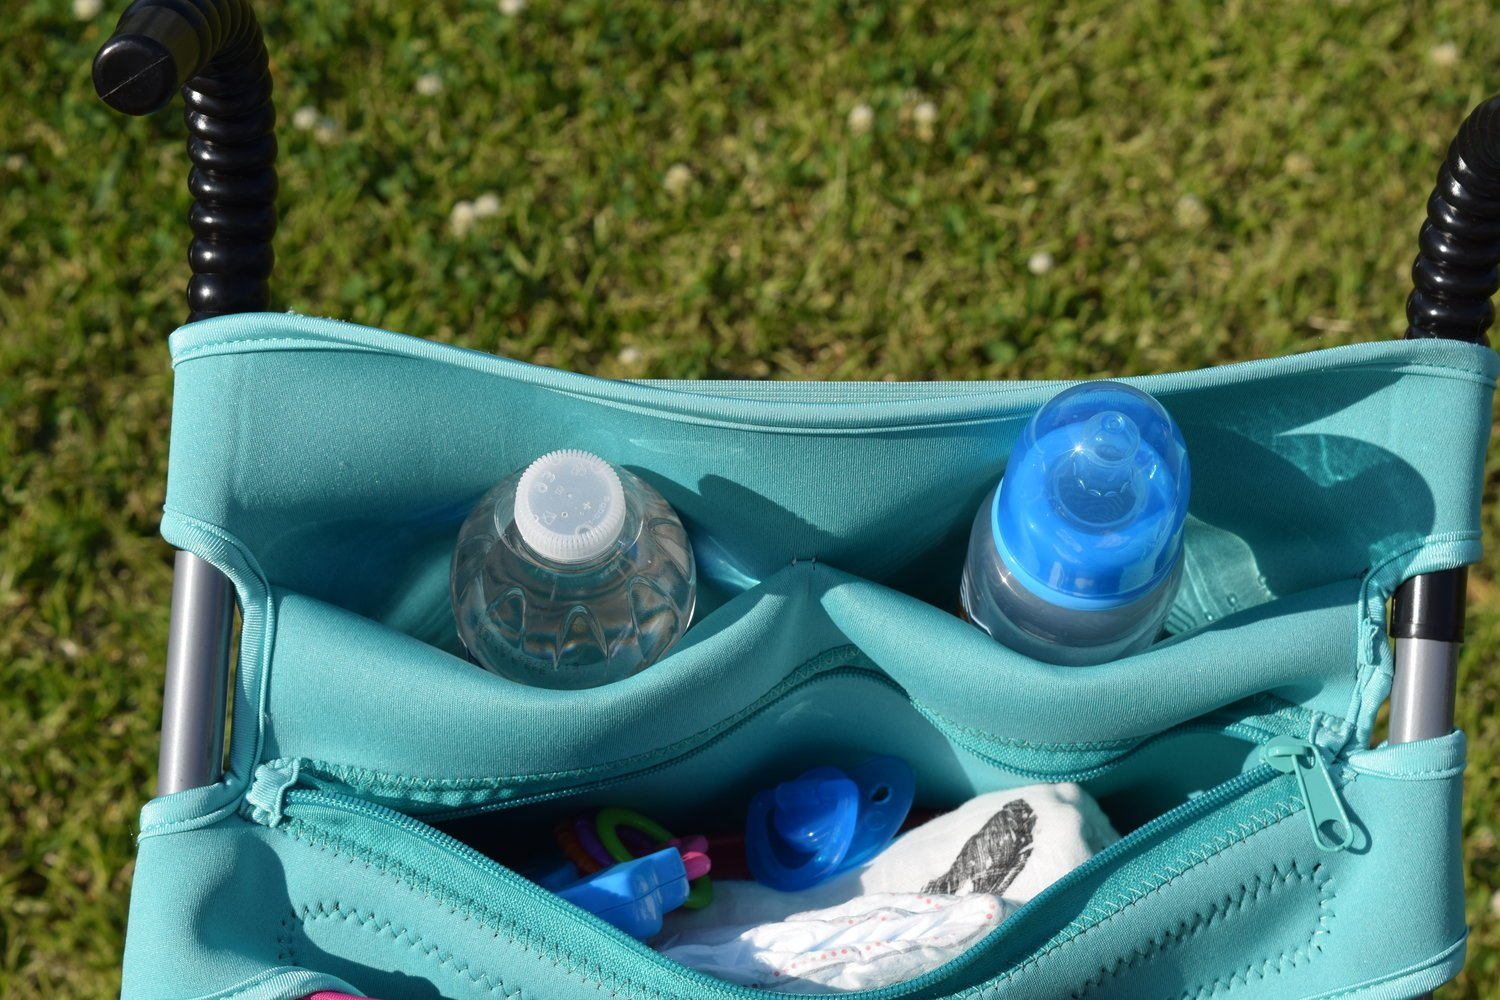 Baby Stroller Caddy Storage Organizer - Cup, Bottle and Diaper Holder for Stroller Accessories Bag - Universal Umbrella Stroller Organizer with Cup Holders - Perfect Baby Shower Gift (Turquoise) by Sunshine Nooks (Image #7)